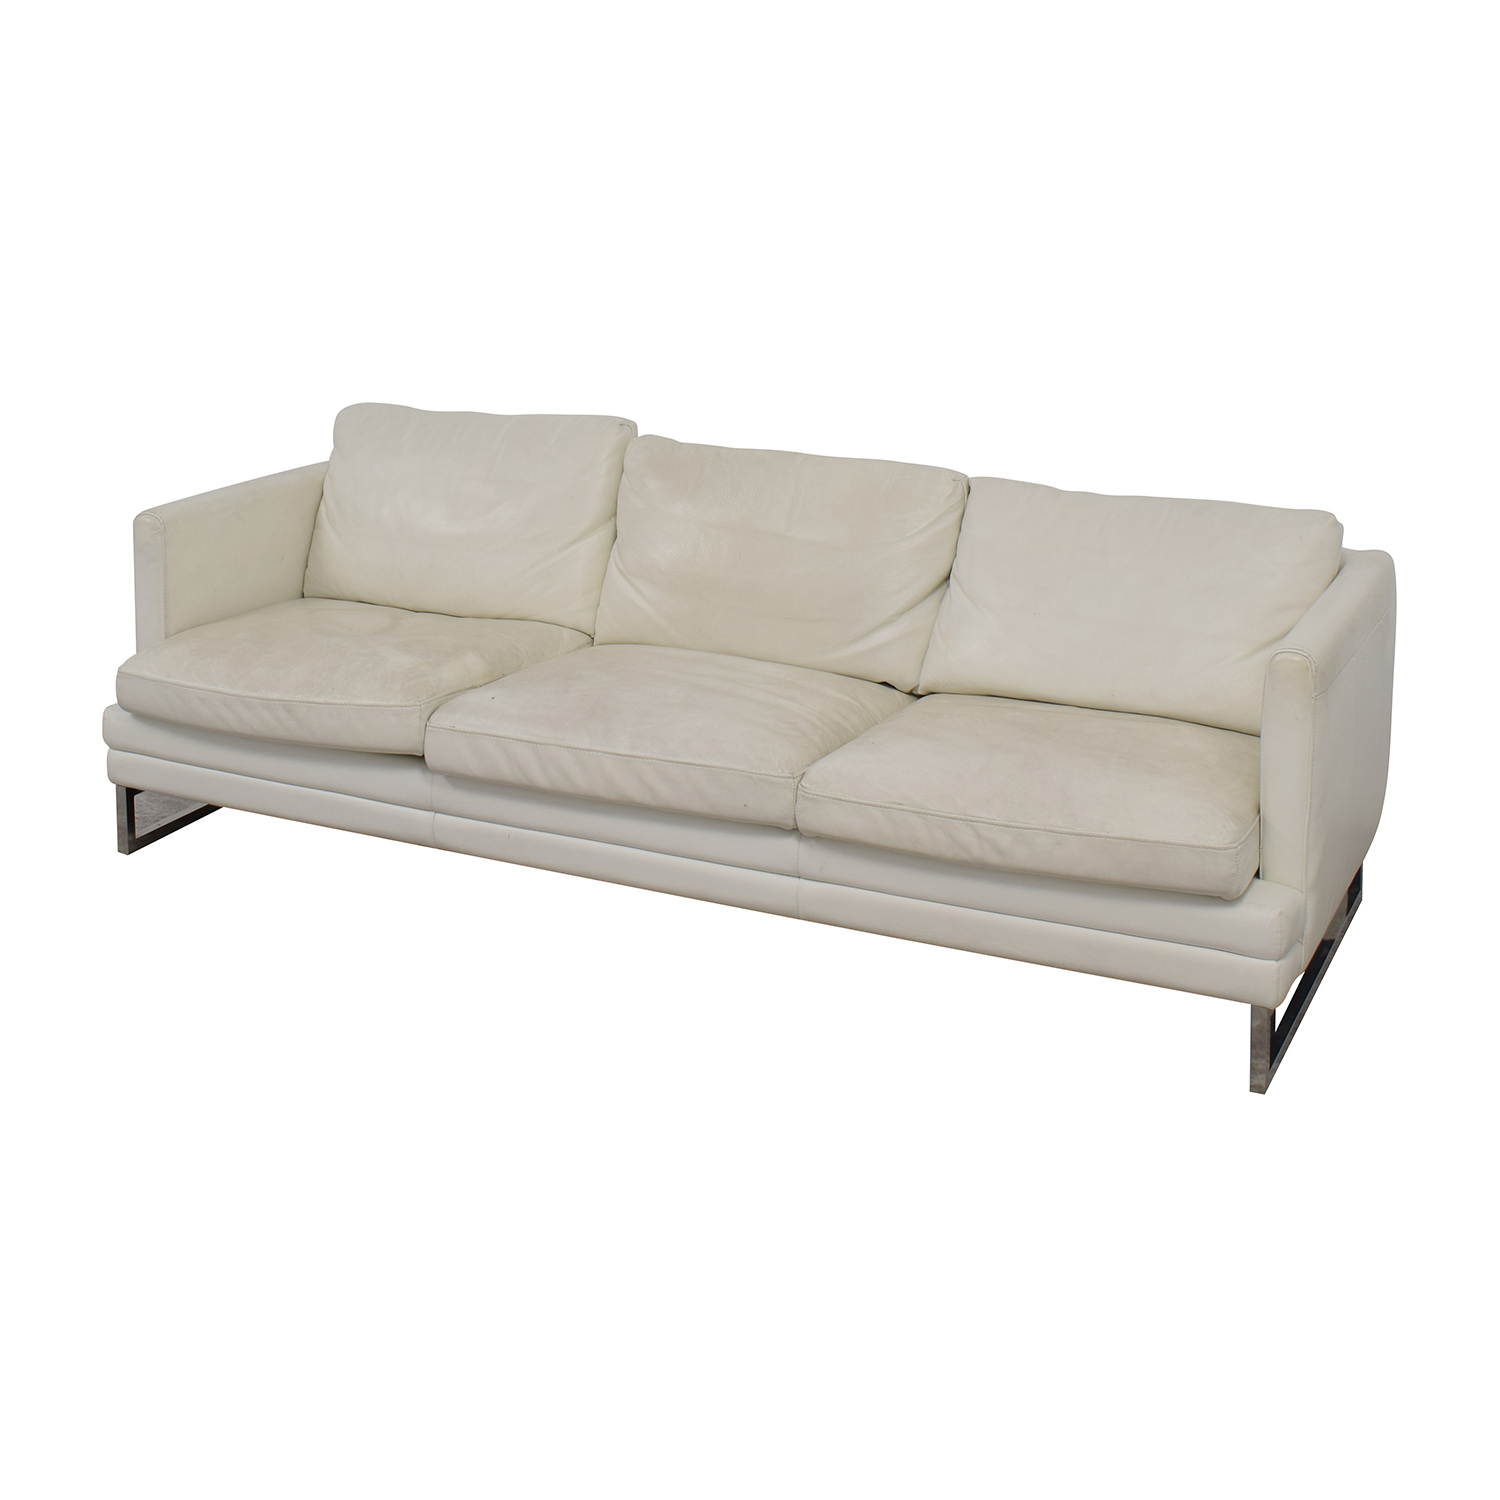 z gallerie chairs sport brella chair recliner 50 off white leather three